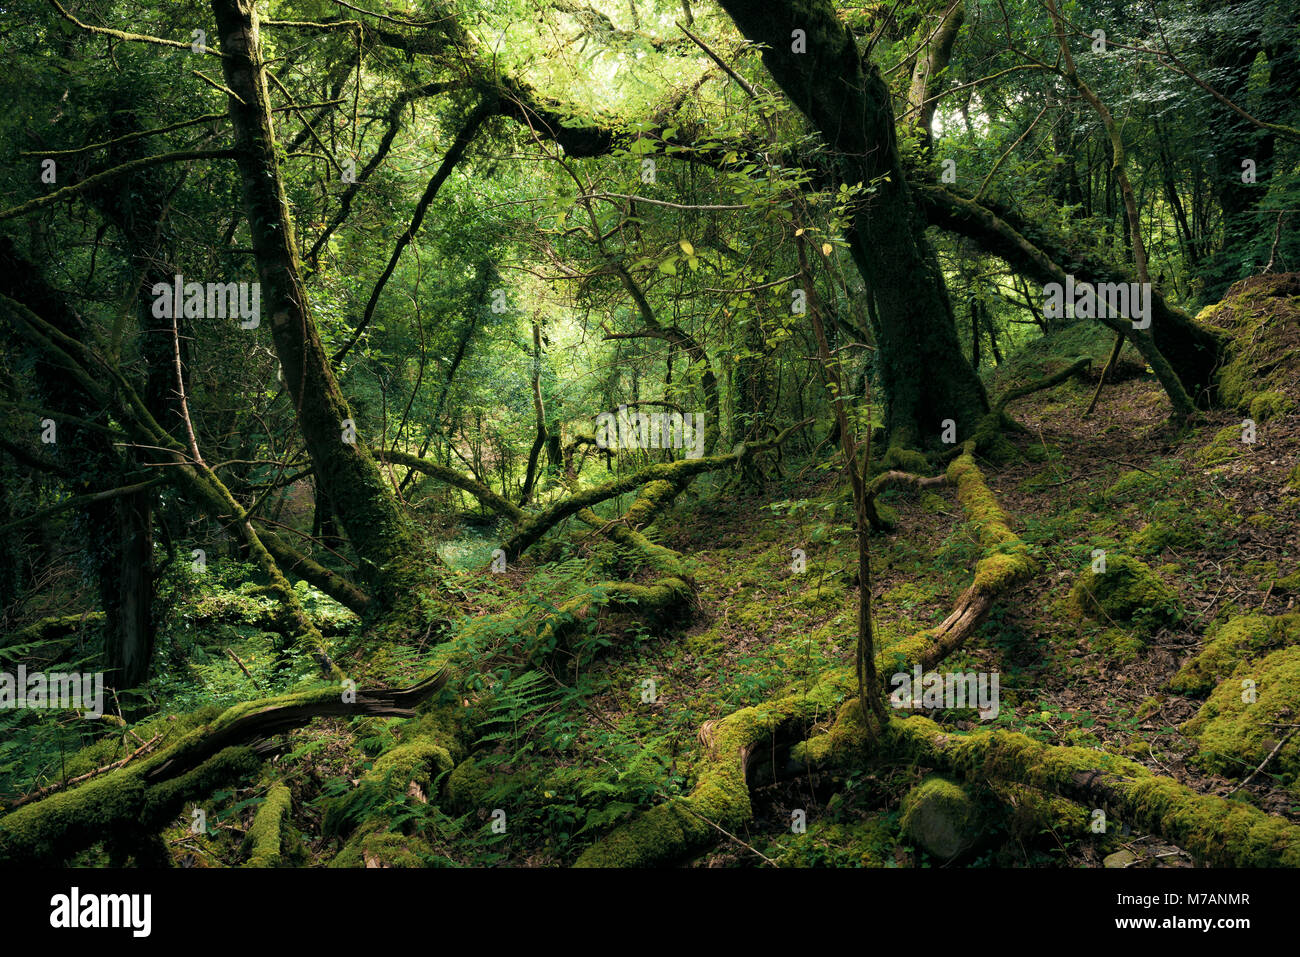 Primeval forest in mystical light at Bantry Bay, Cork, Ireland - Stock Image